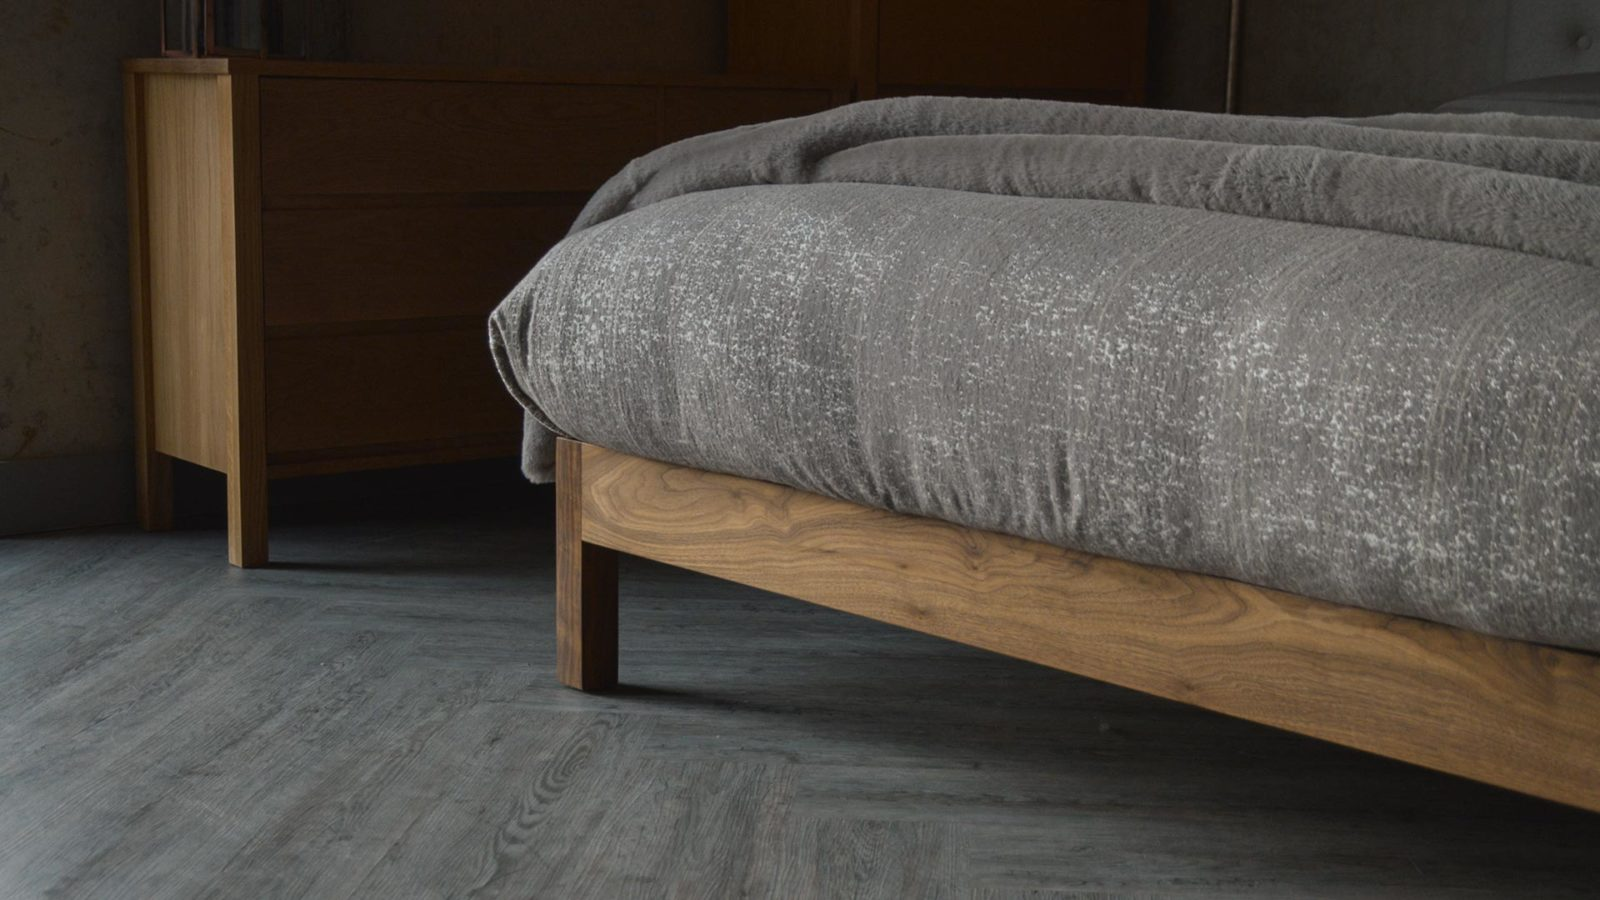 A closer view of the Arran bed walnut leg and foot end bed frame